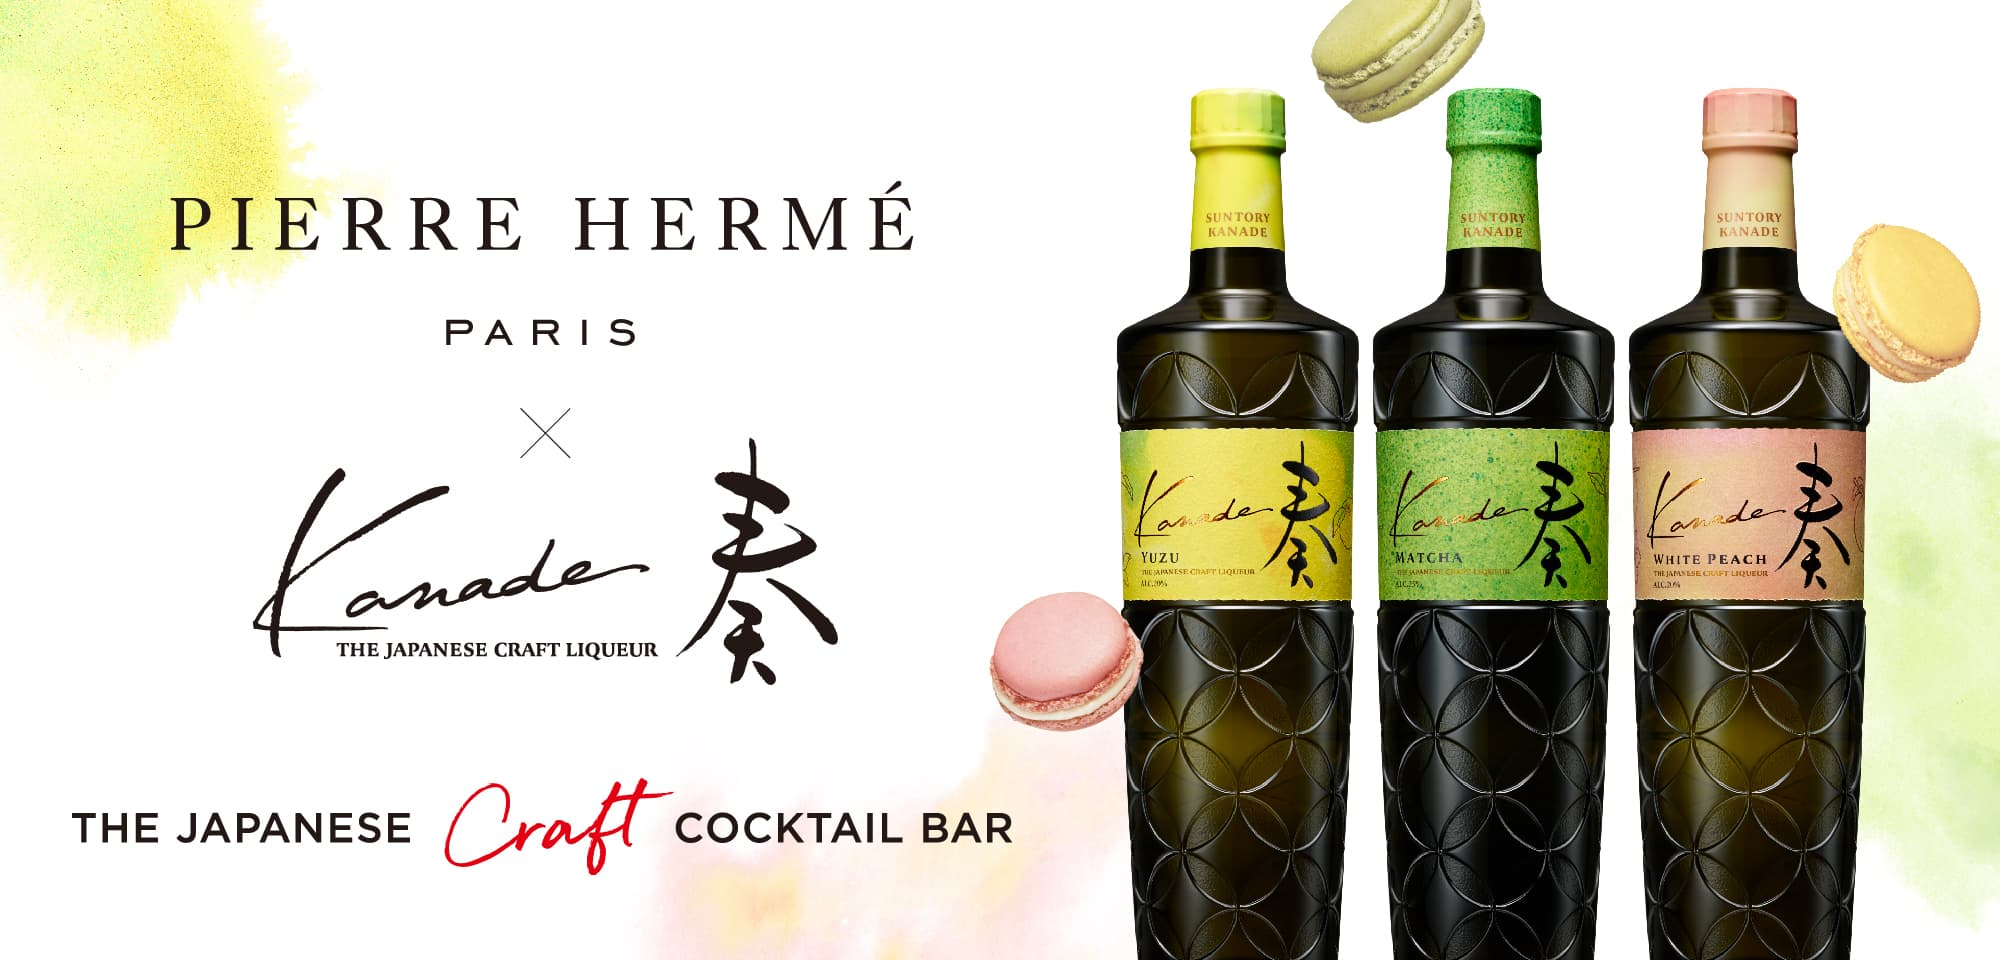 PIERRE HERME PARIS×Kanade奏 THE JAPANESE CRAFT COCKTAIL BAR